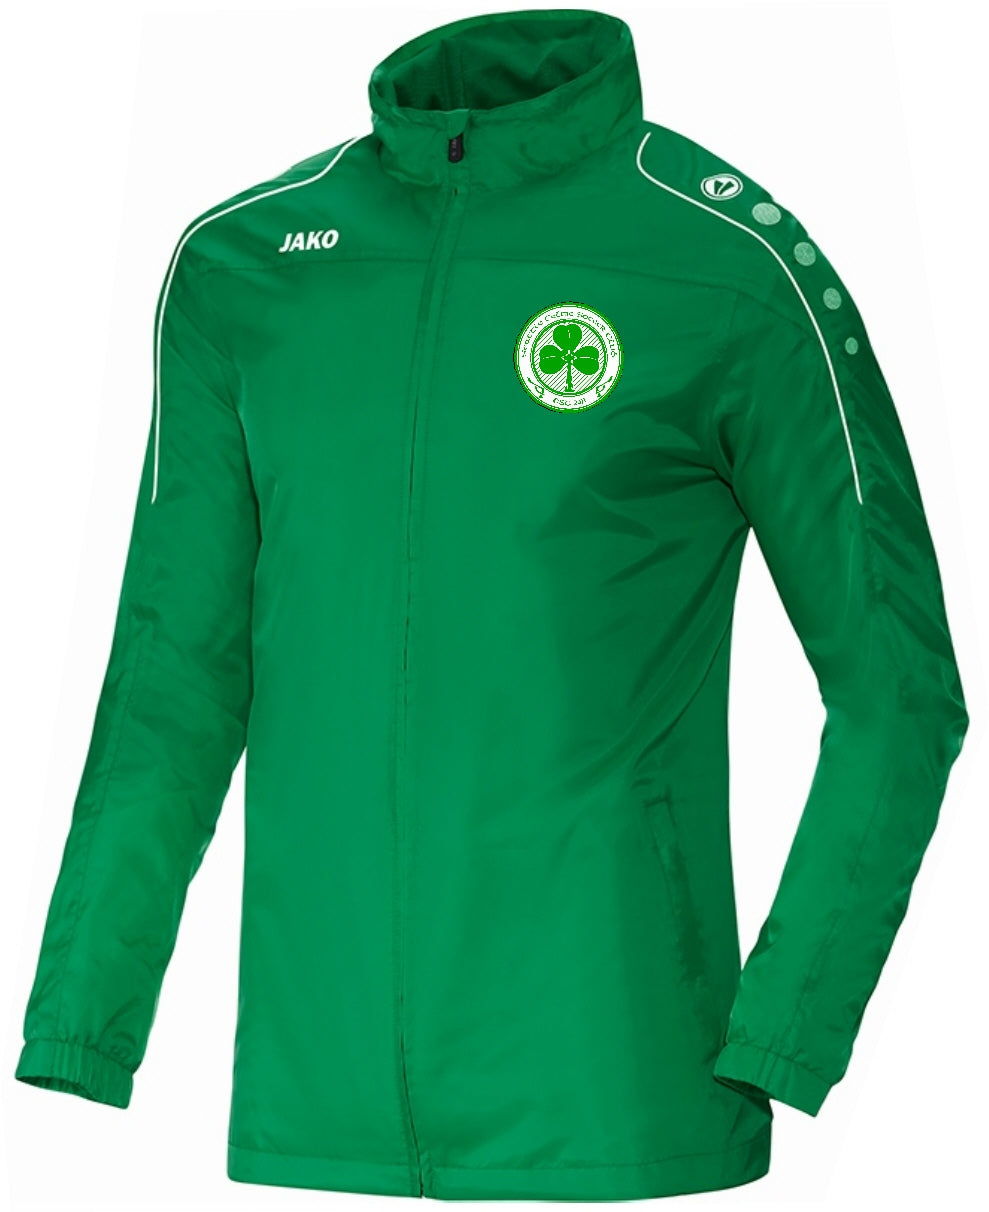 KIDS SEATTLE CELTIC TEAM RAIN JACKET SC7401K GREEN